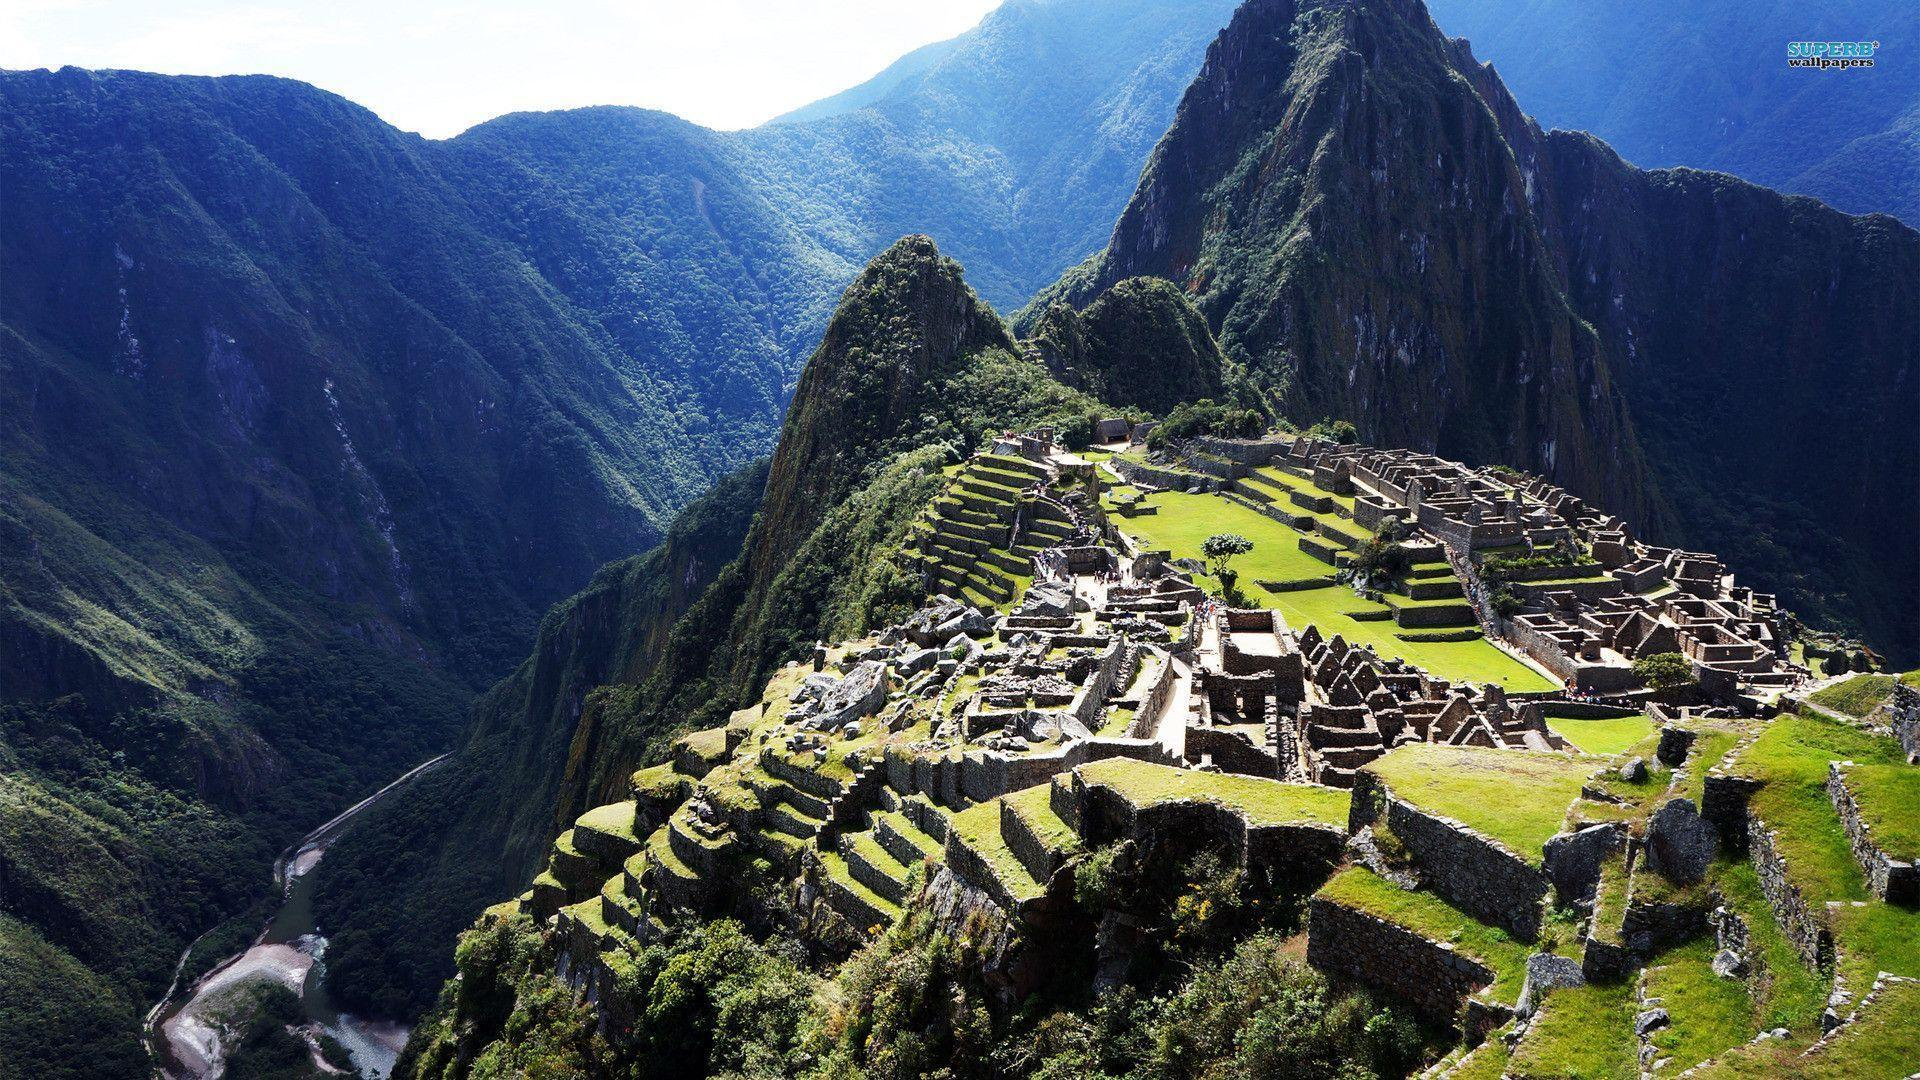 Historic Sanctuary of Machu Picchu wallpaper - World wallpapers - #